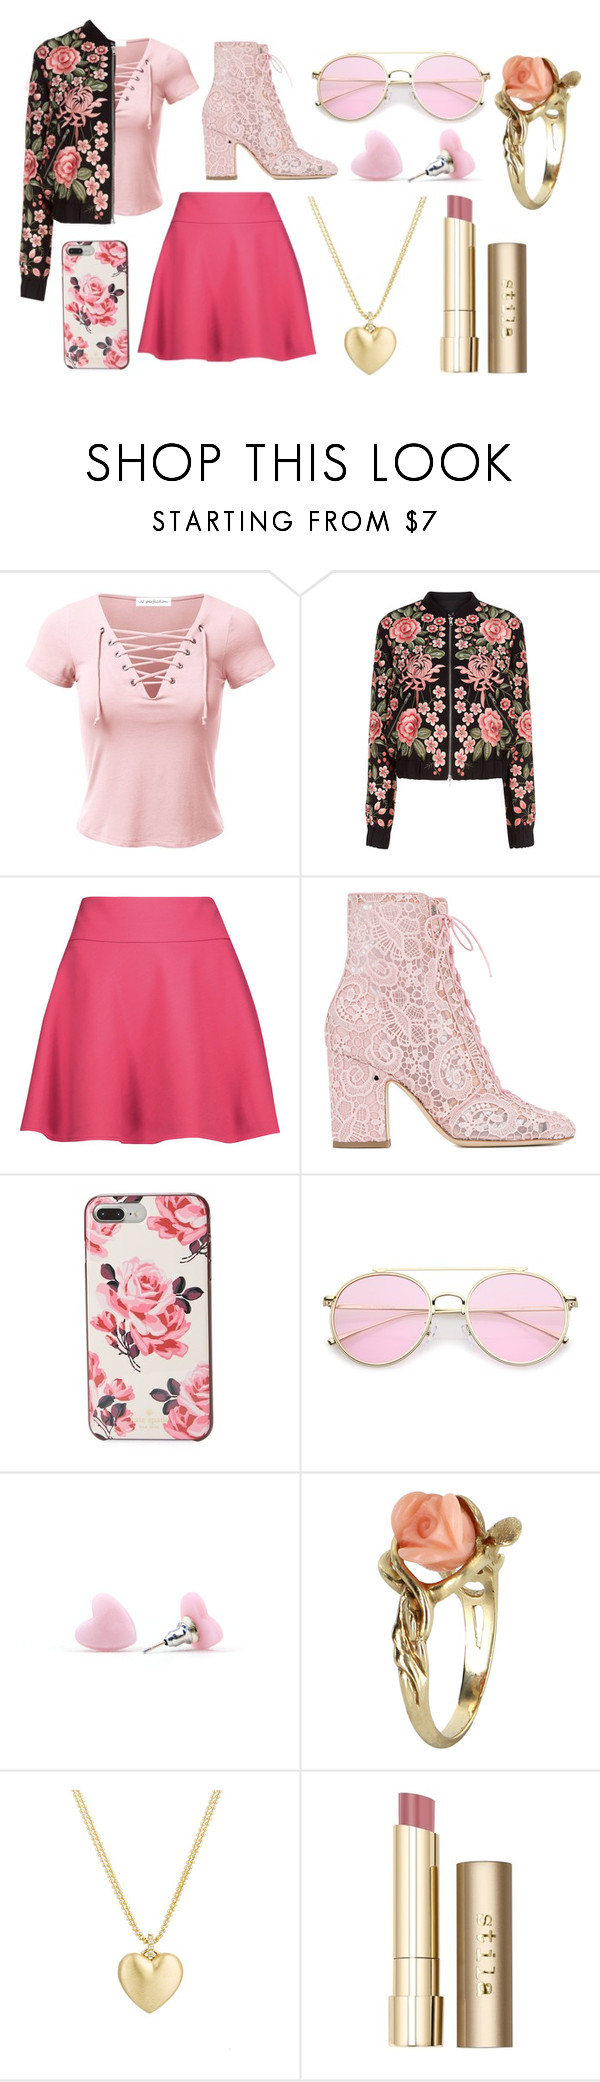 """Daughter of Aphrodite"" by methebault ❤ liked on Polyvore featuring Needle & Thread, RED Valentino, Laurence Dacade, Kate Spade, Vintage, Finn and Stila"